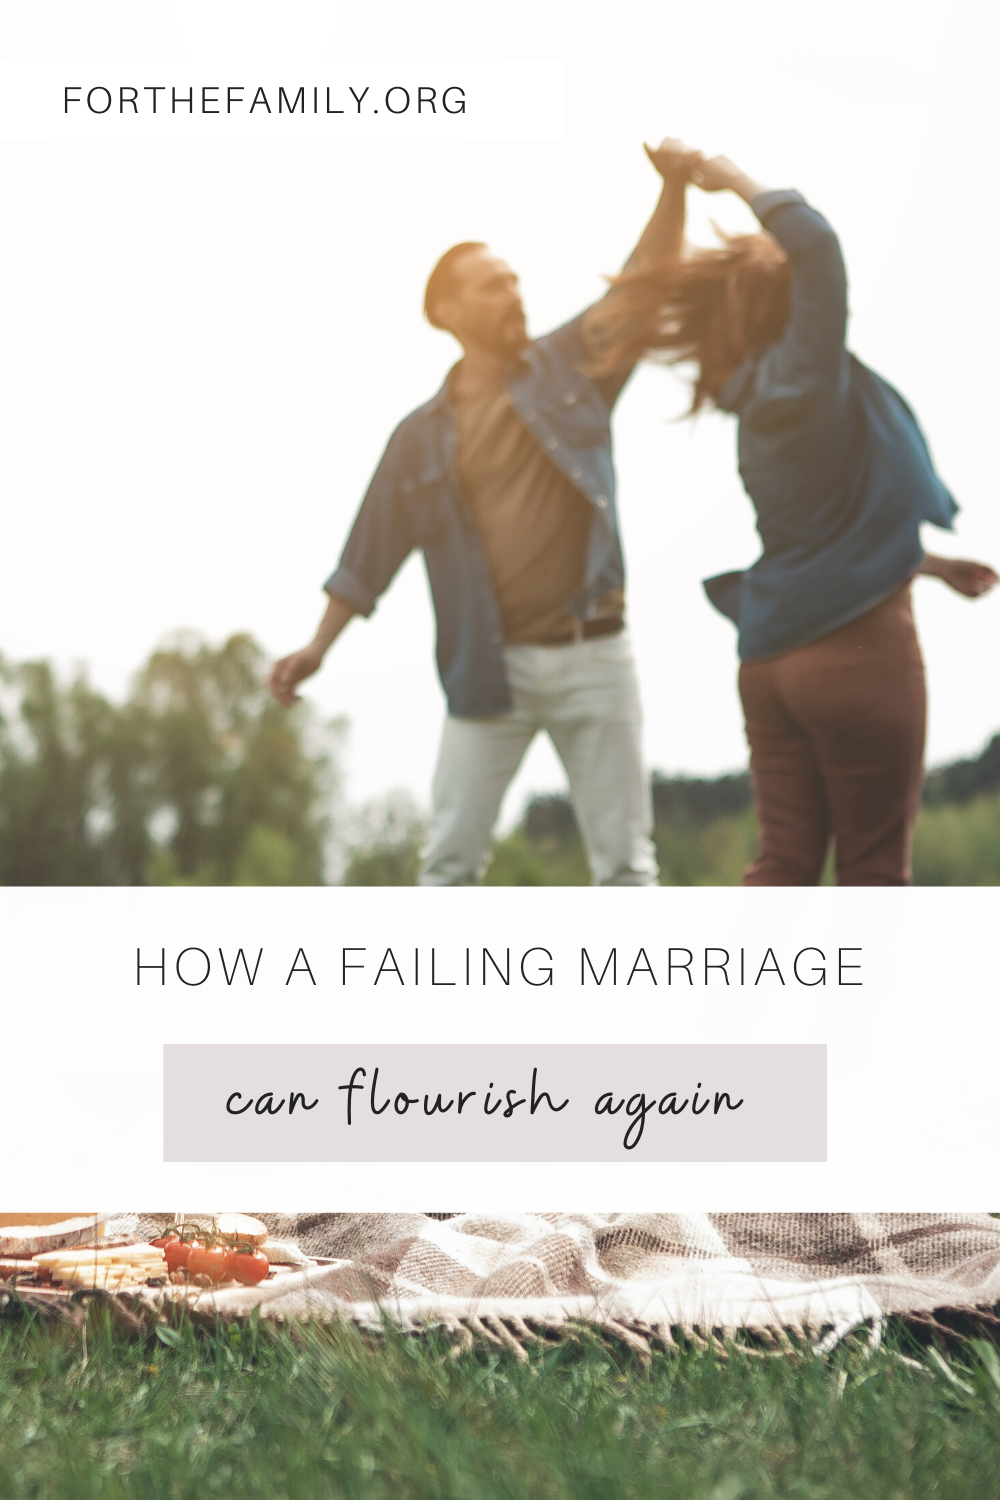 Every new stage of life brings along new challenges for our marriages. These challenges often expose our shortcomings, but God has the power to press the reset button. A marriage can flourish rather than fail when you have a hope-filled faith in God!